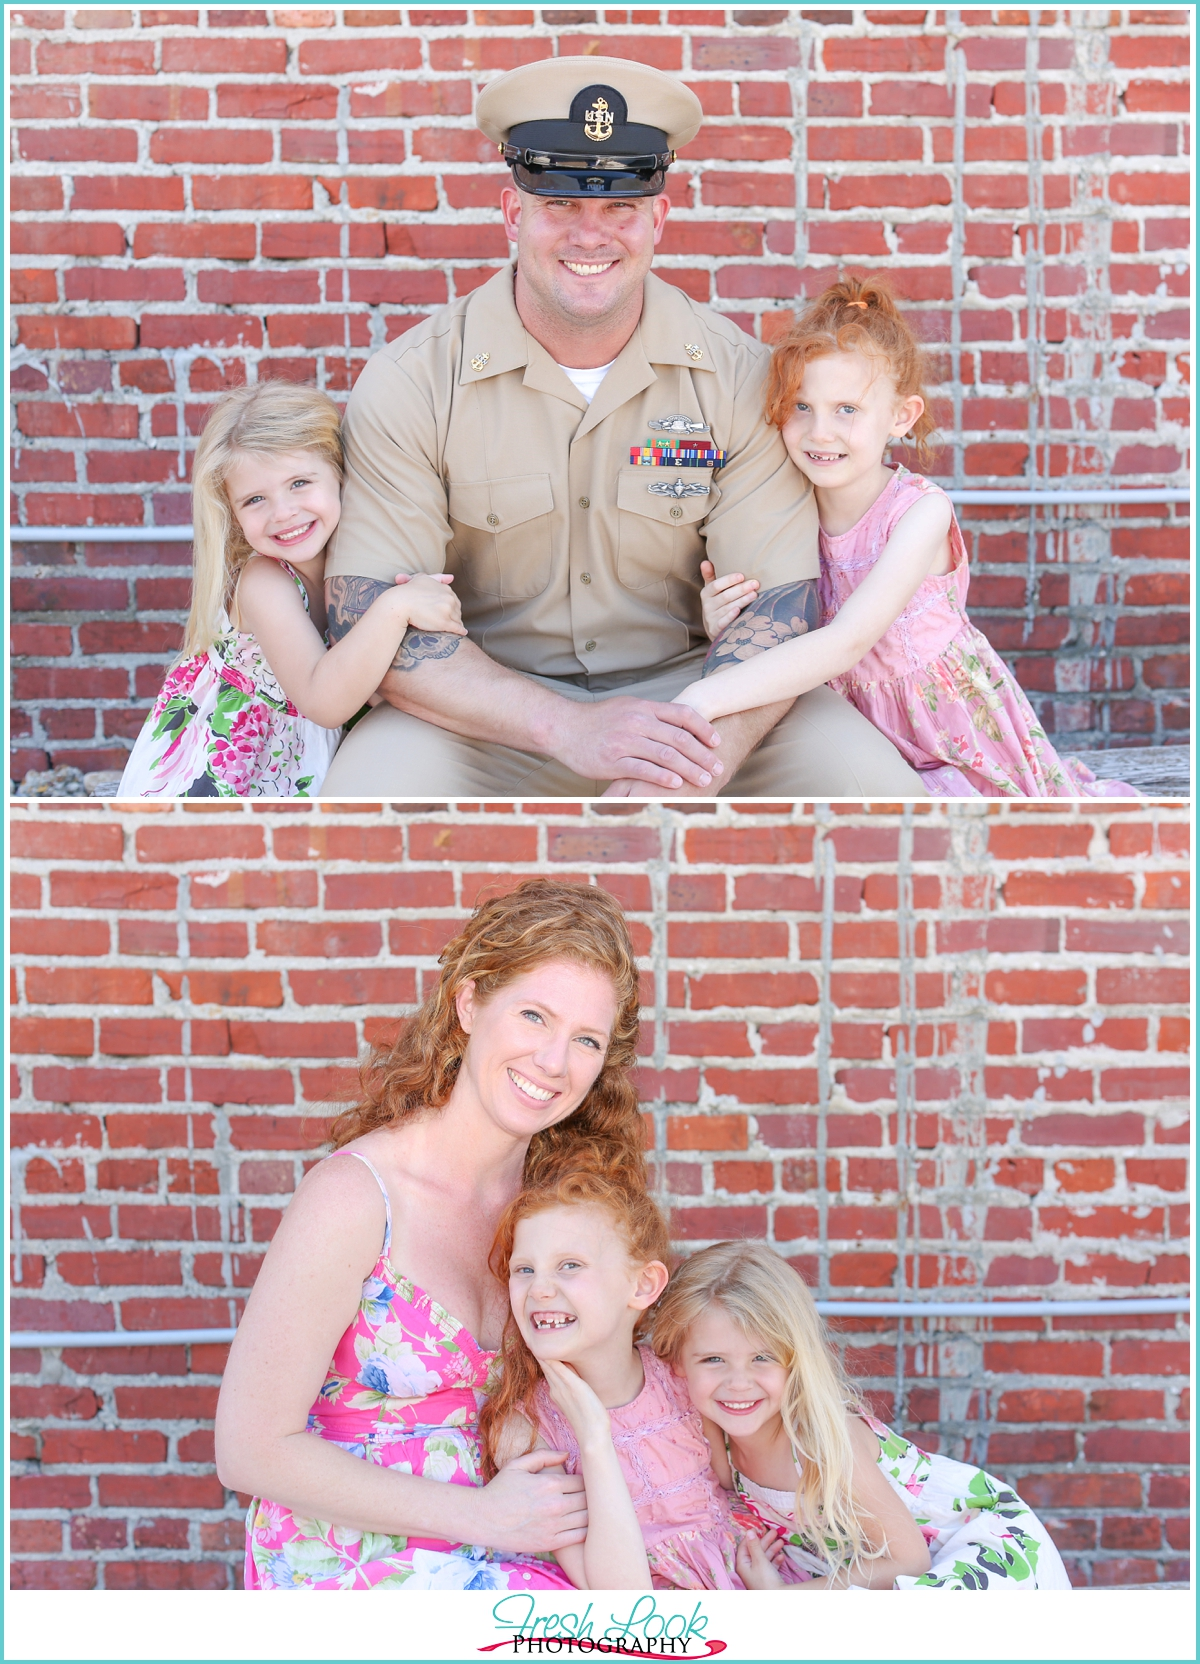 daddy in the military